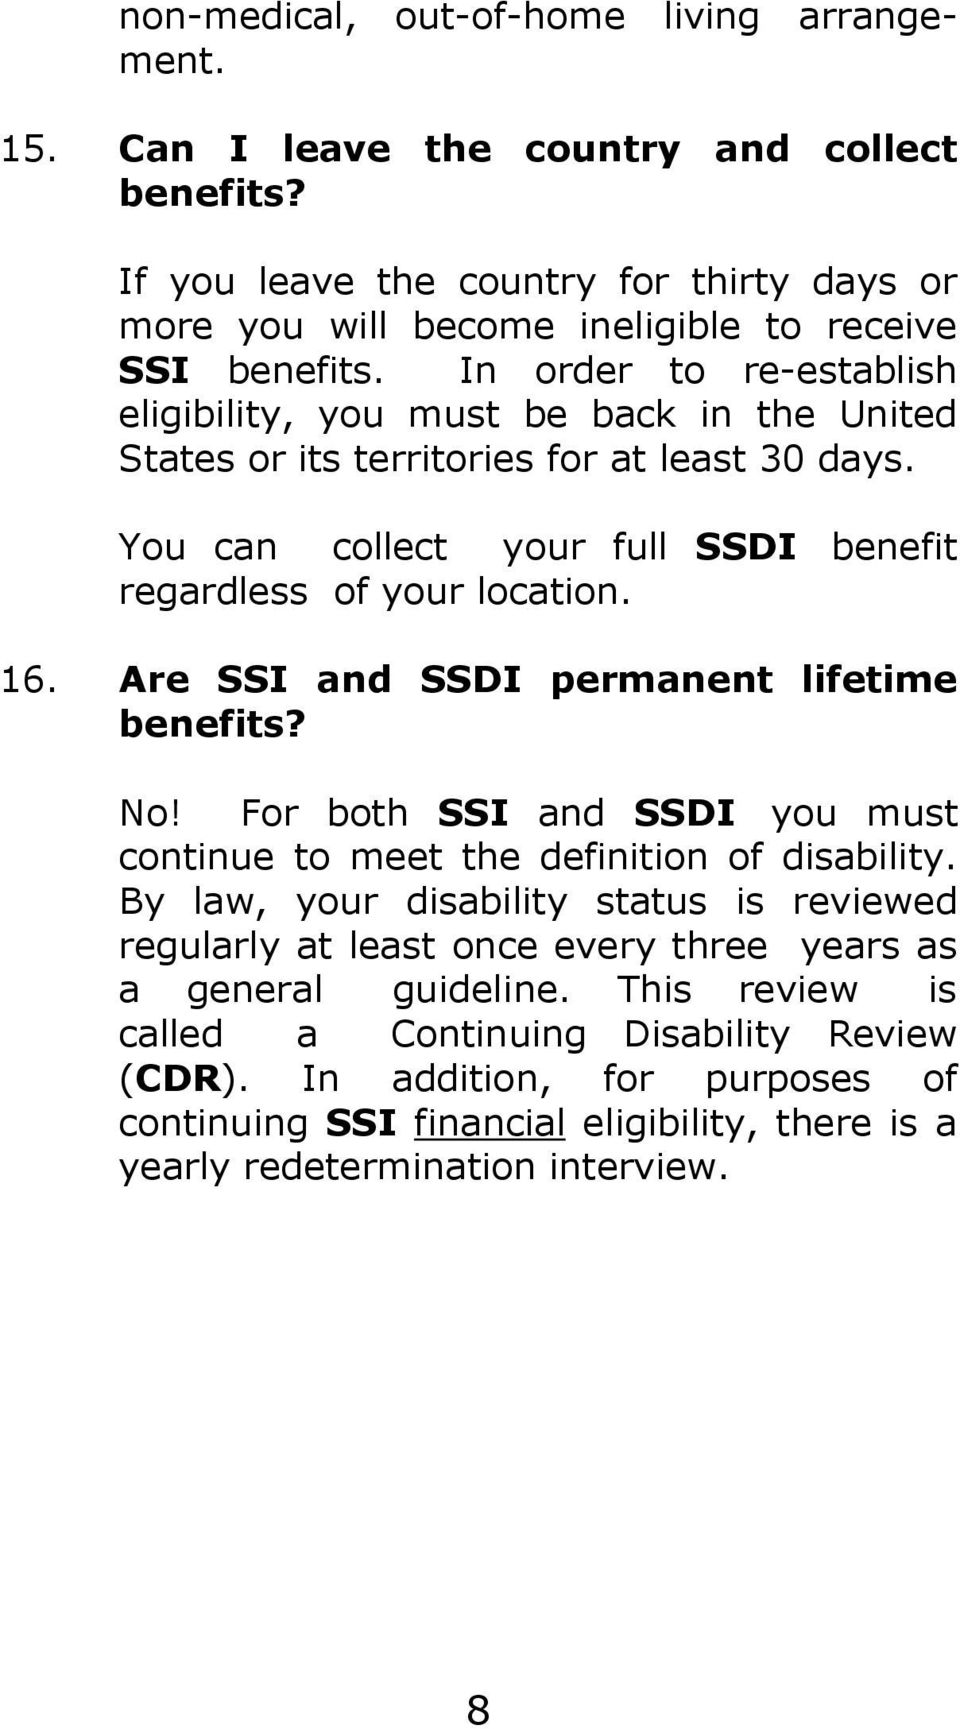 Are SSI and SSDI permanent lifetime benefits? No! For both SSI and SSDI you must continue to meet the definition of disability.